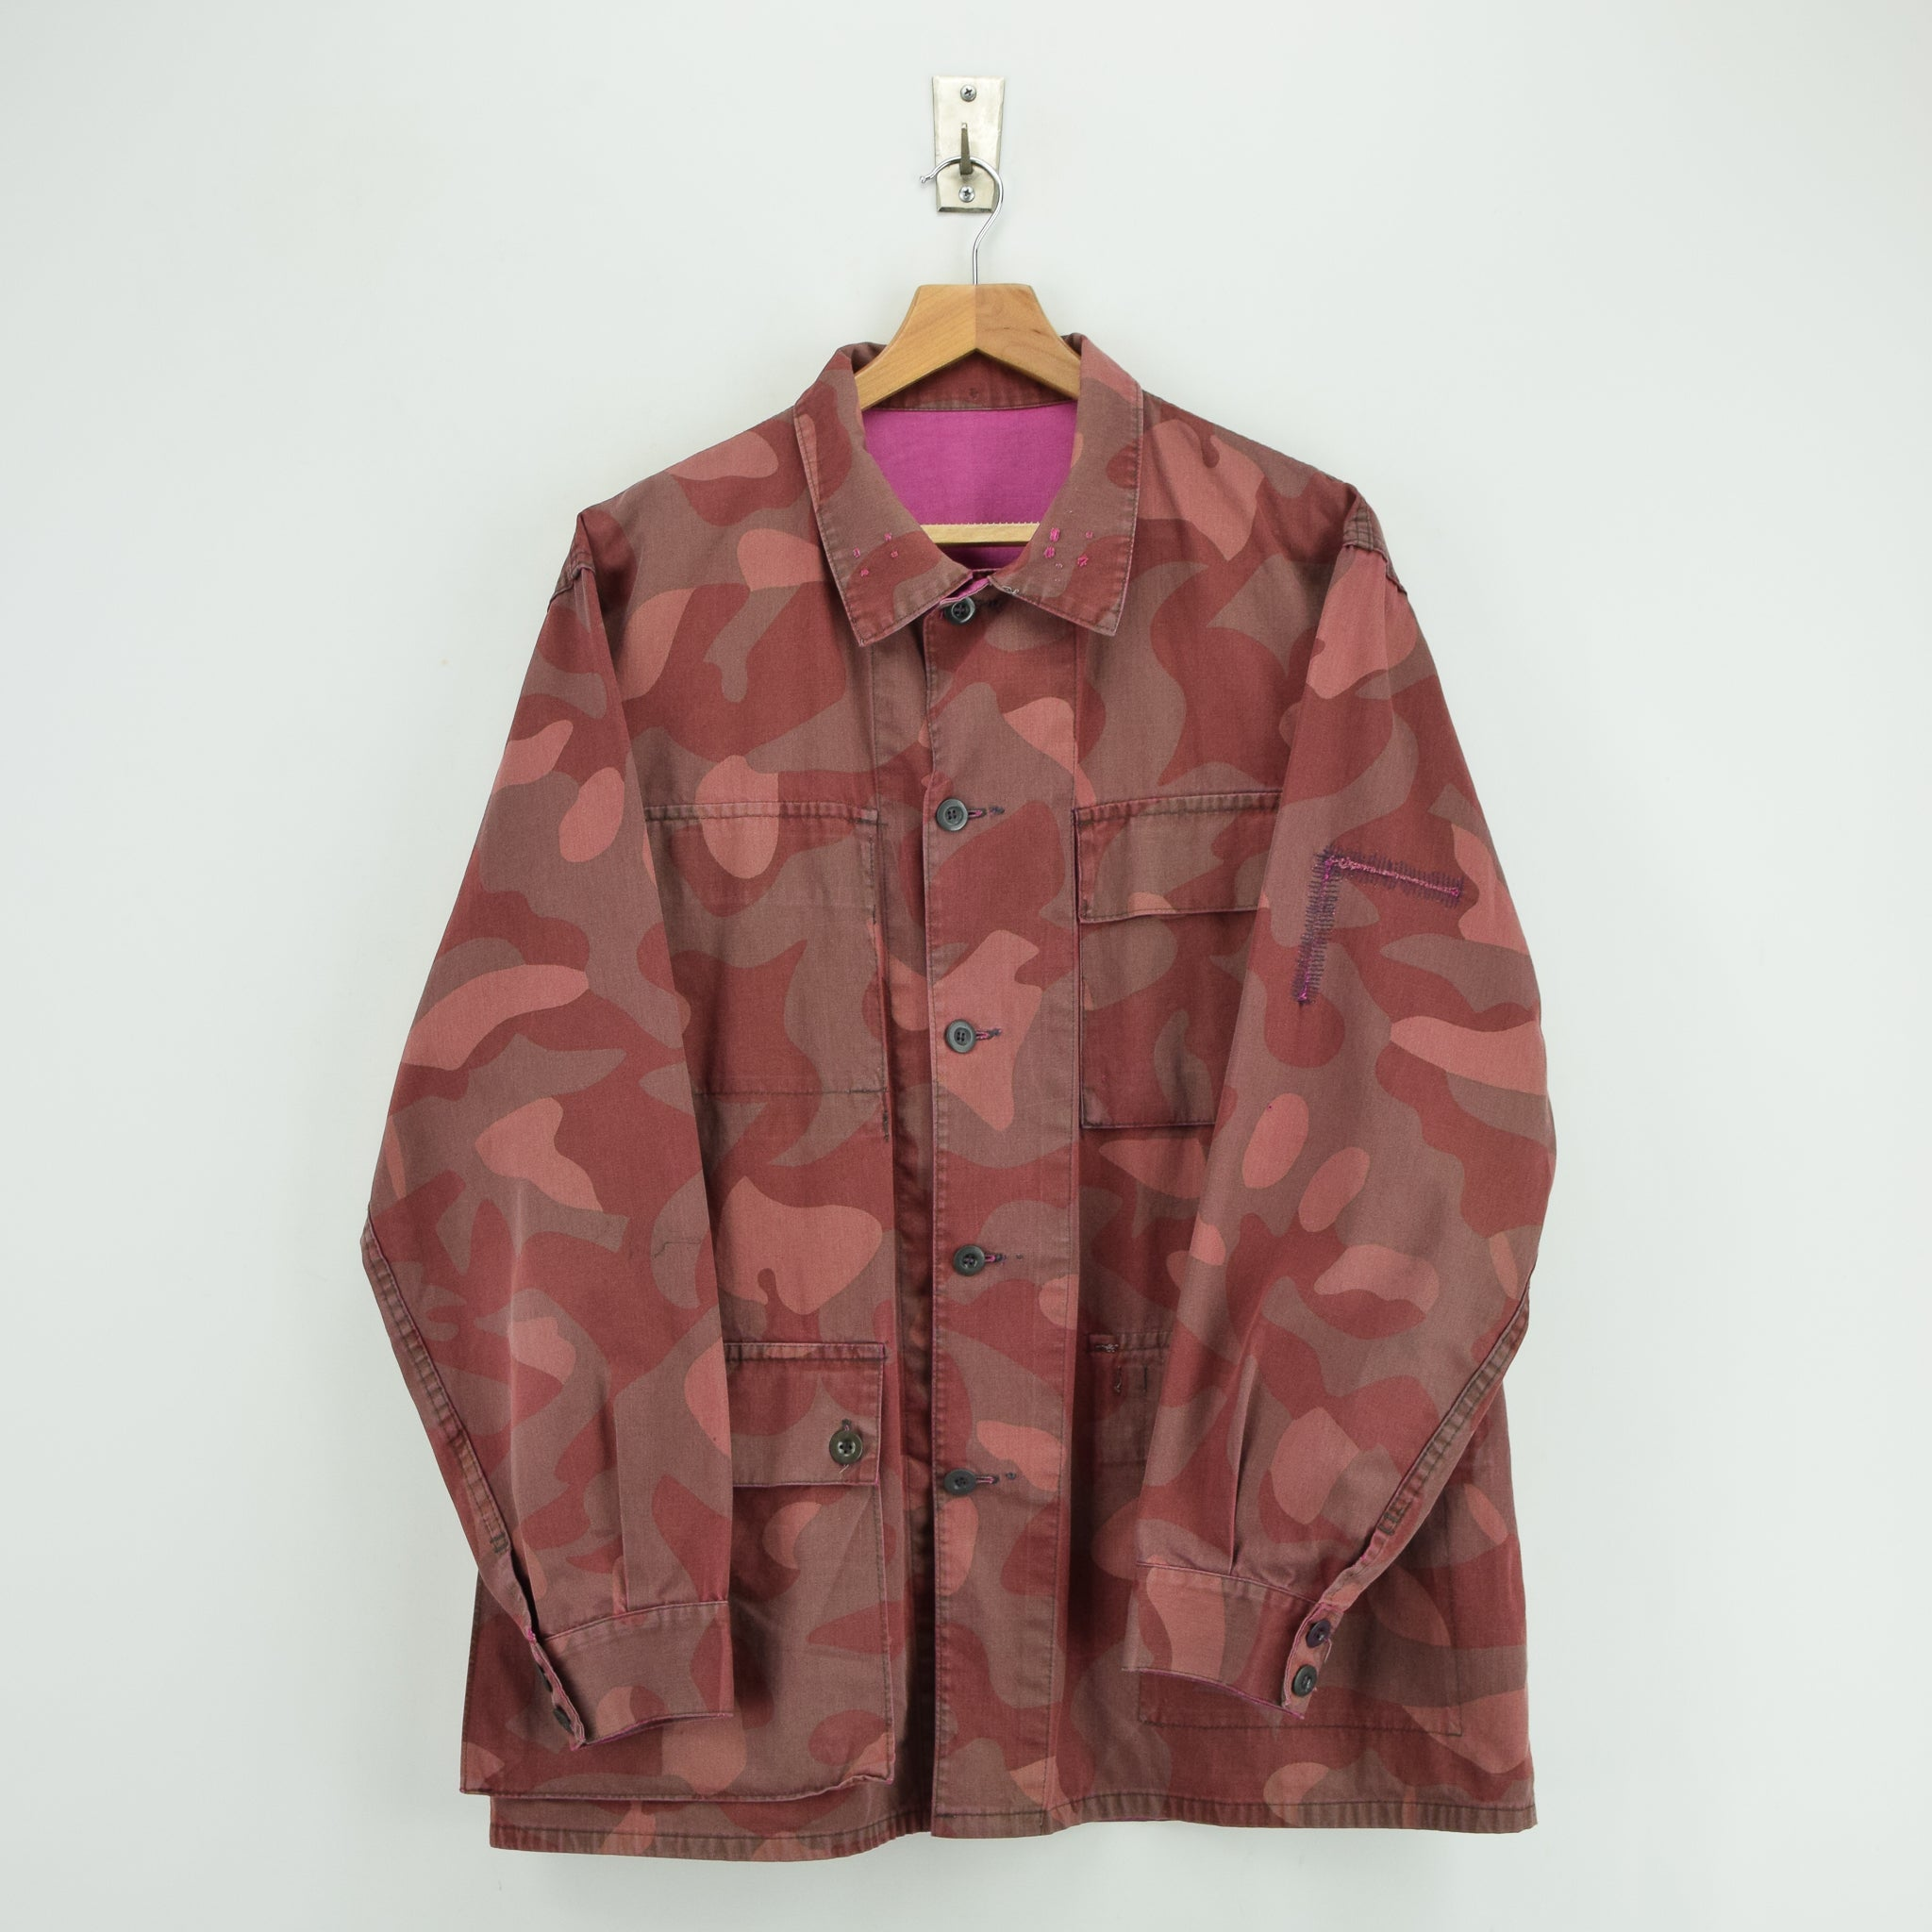 Vintage 70s Military Finnish Army Pink Overdyed Camo Mountain Field Jacket XL front